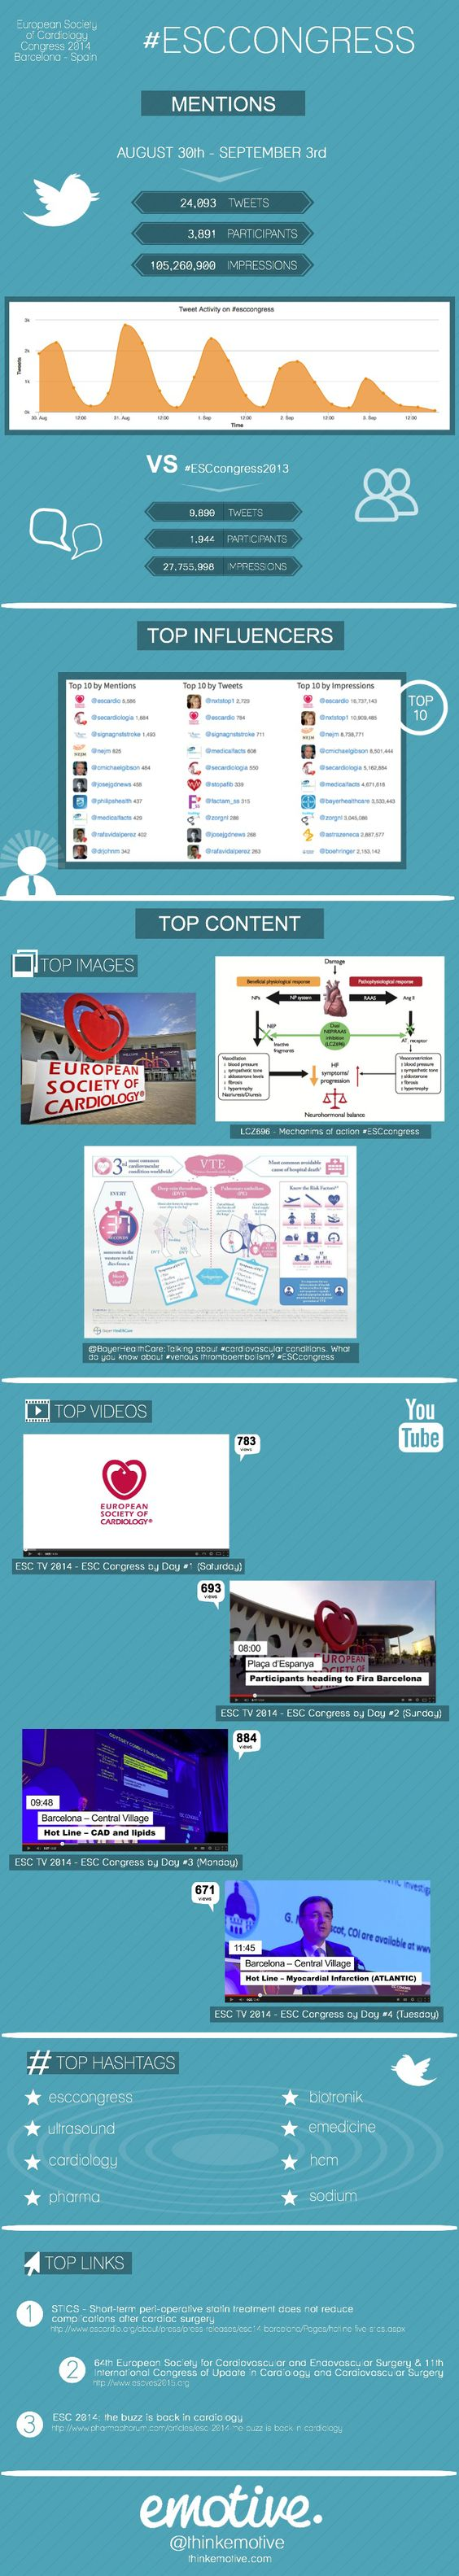 emotive Infographic: Insights from #ESCCongress